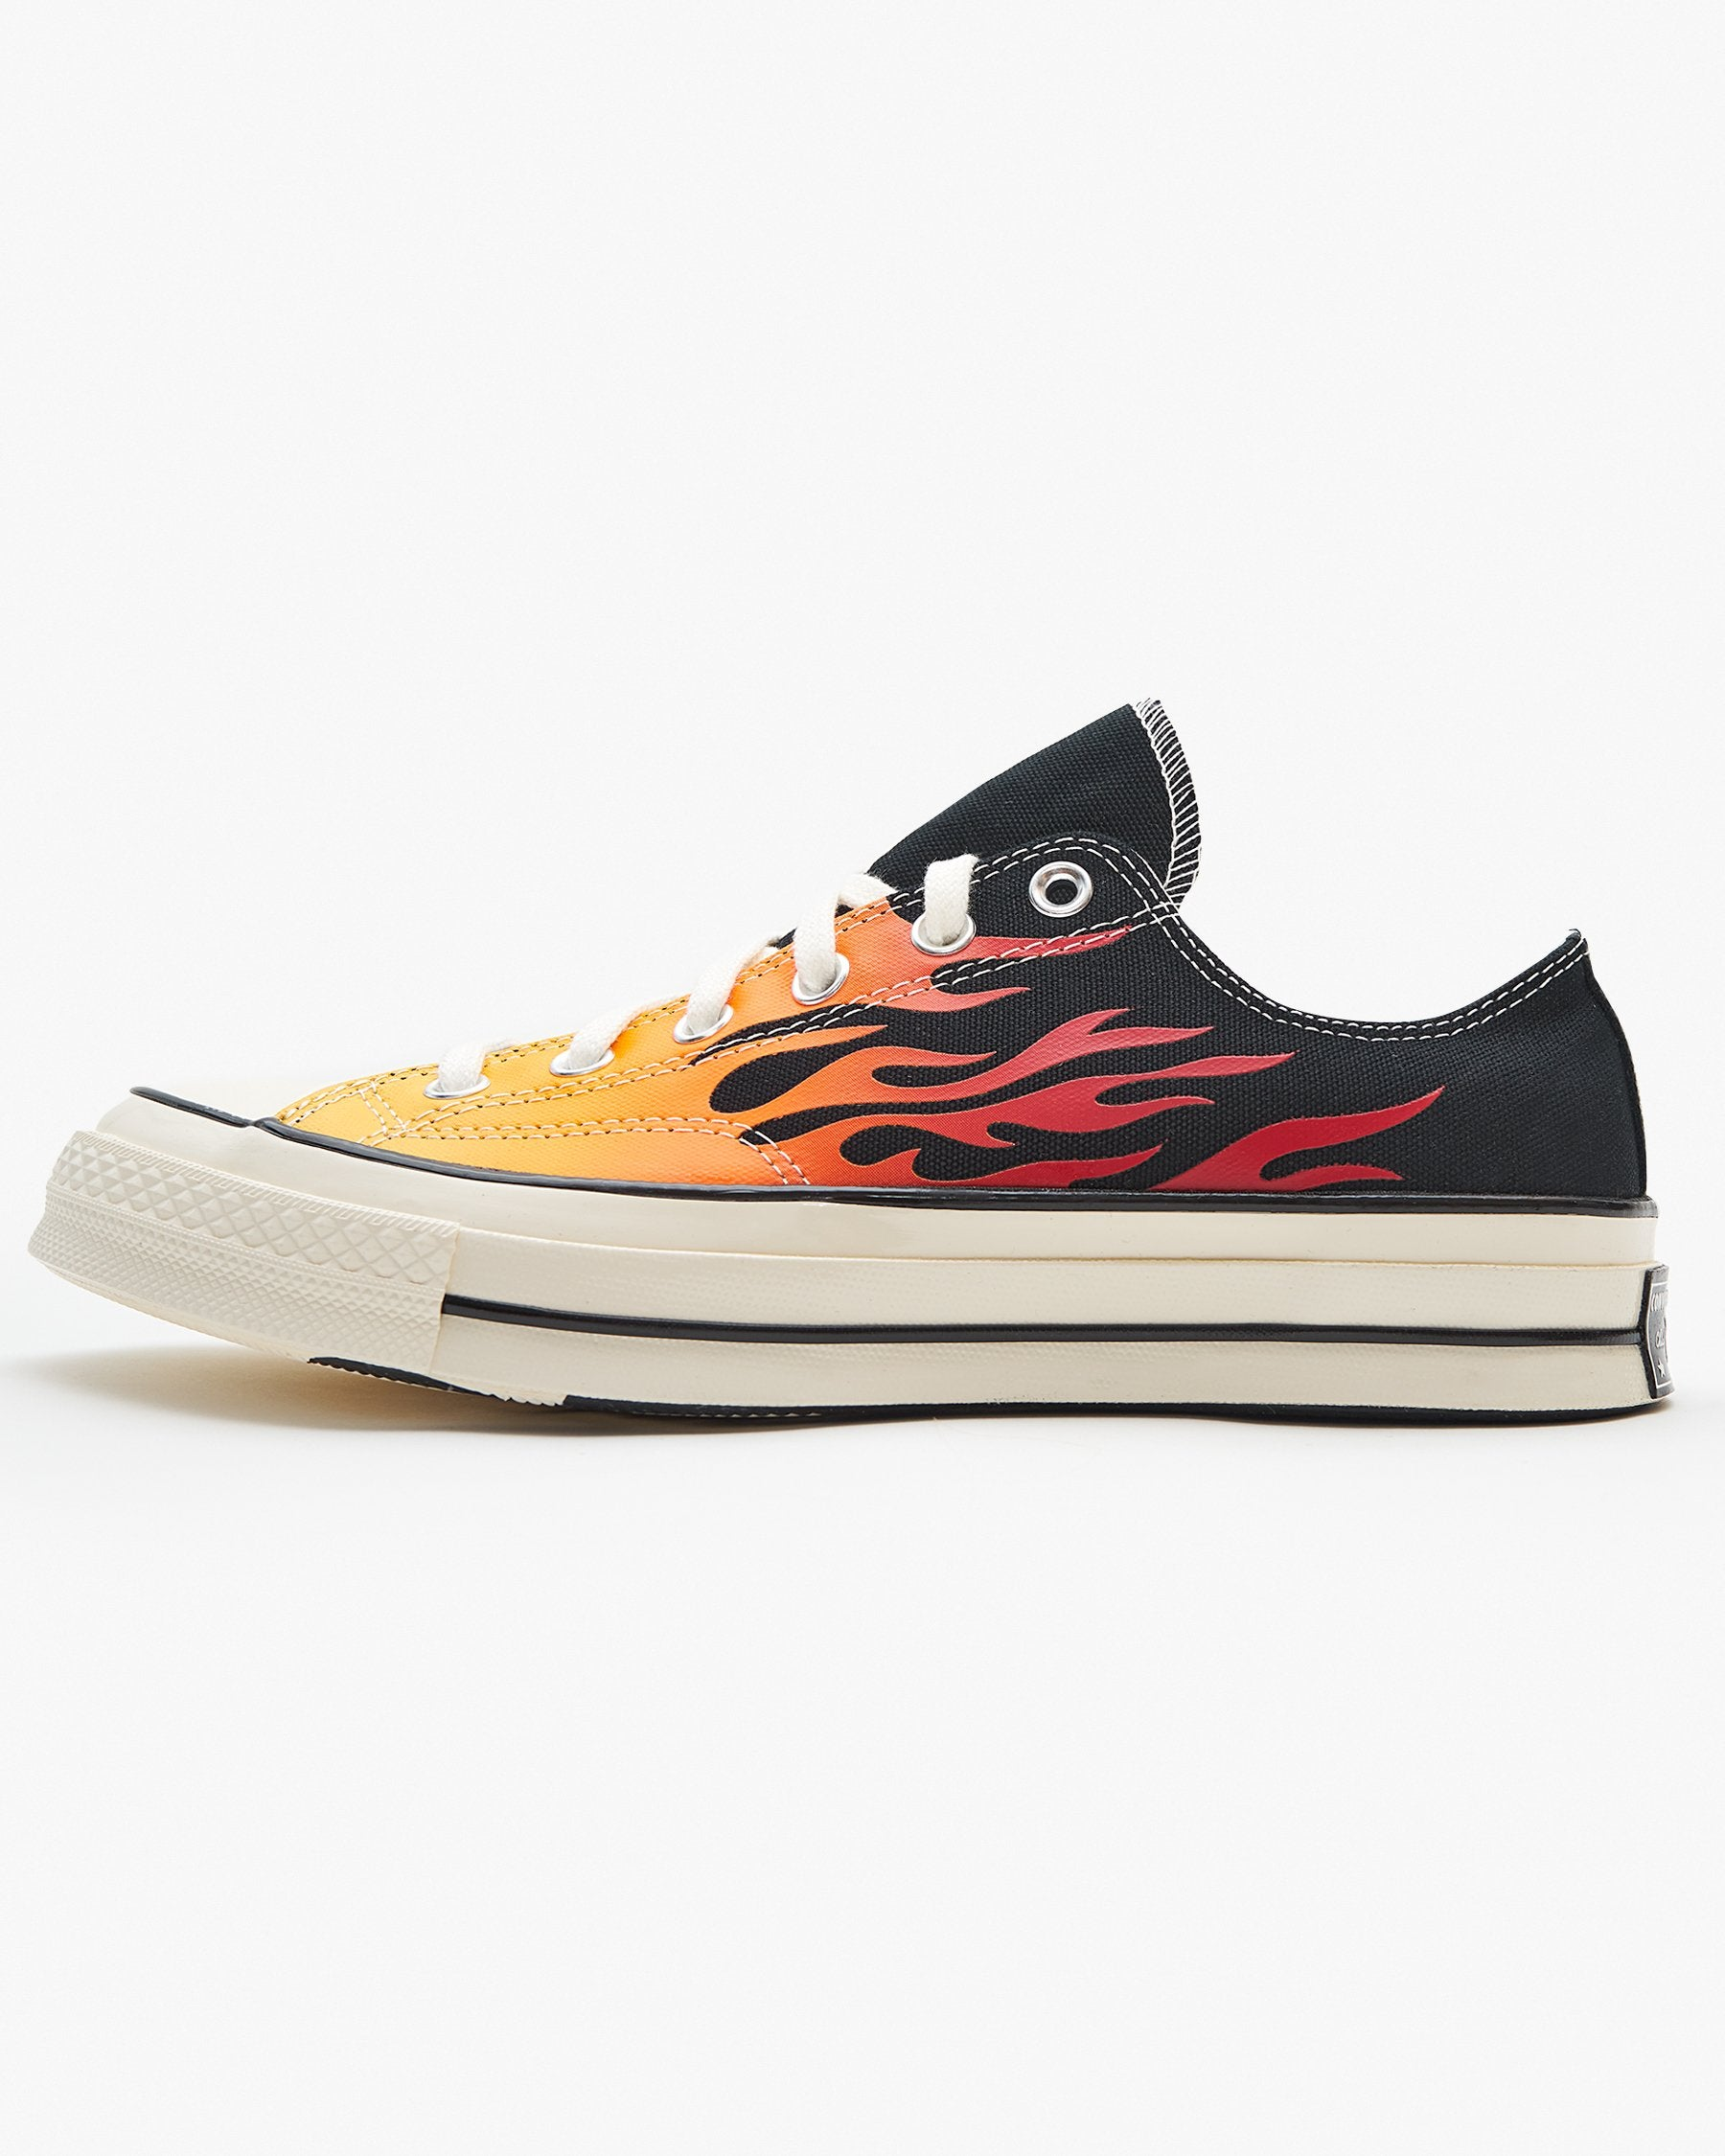 Converse Chuck 70 Low Archive Print - Black / Enamel Red / Egret UK 7 167813C7 194432037724 Converse Trainers